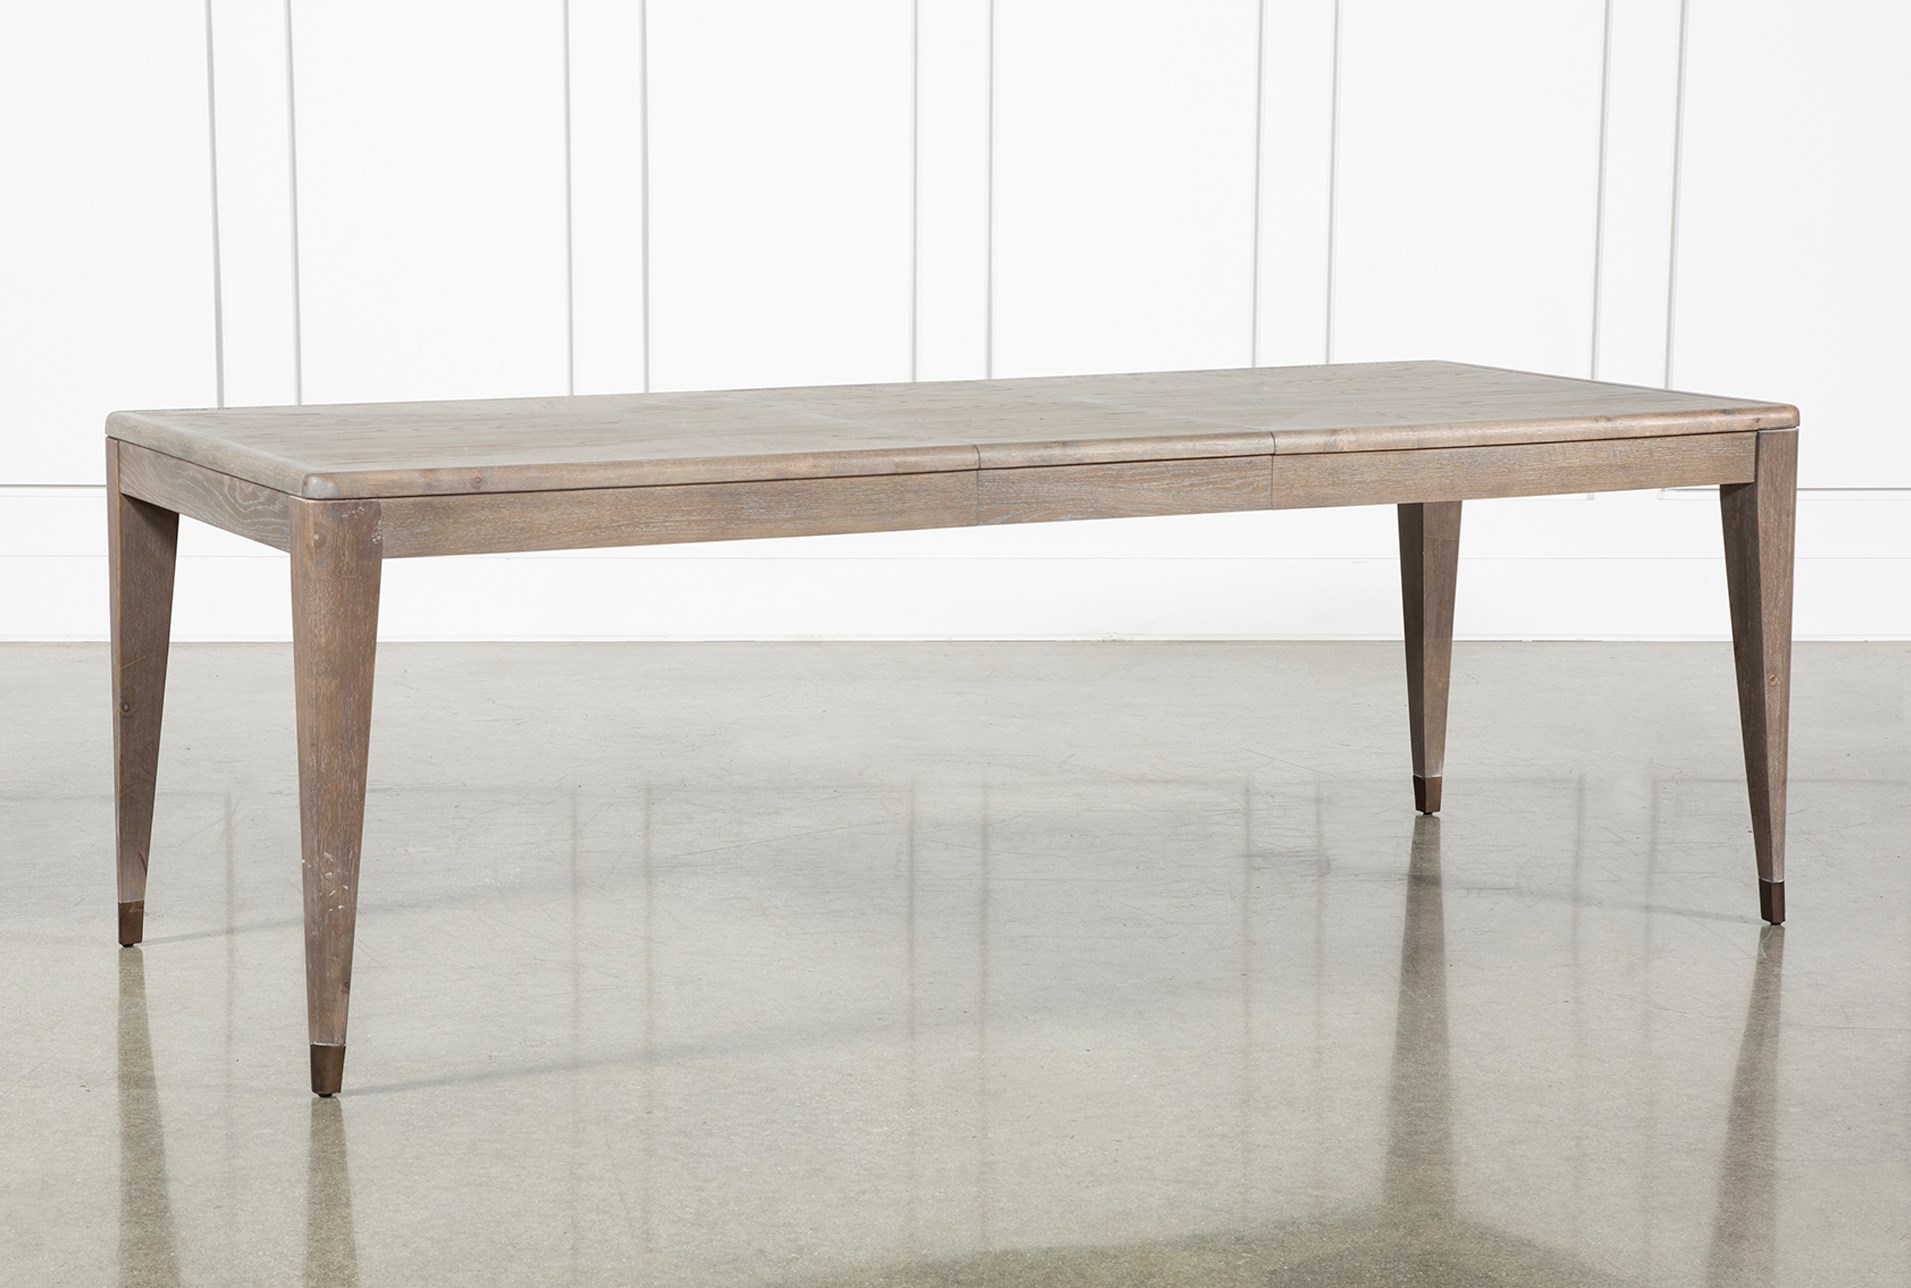 Pavilion Rectangle Extension Dining Table By Nate Berkus And Jeremiah B Qty 1 Has Been Successfully Added To Your Cart